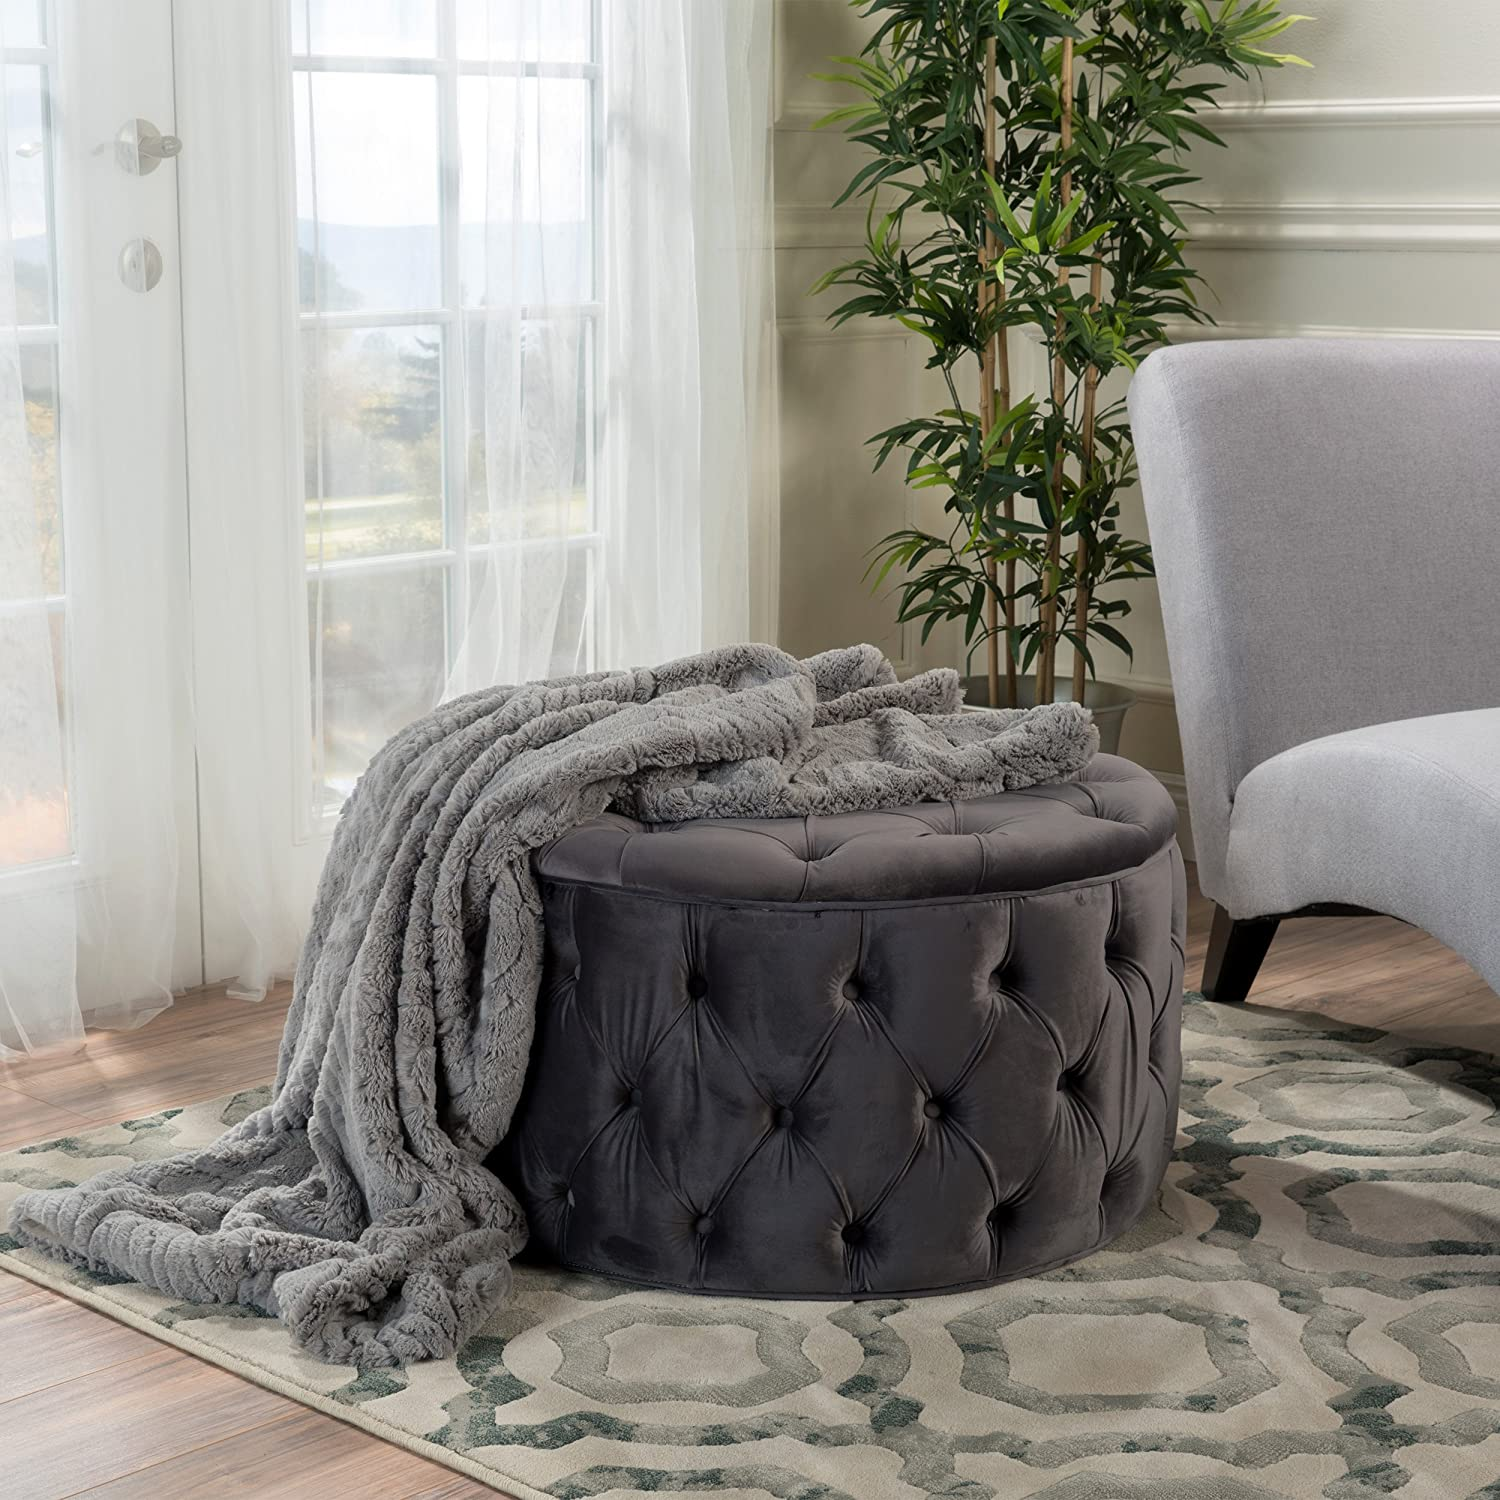 Great Deal Furniture Tufted Velvet Round Ottoman